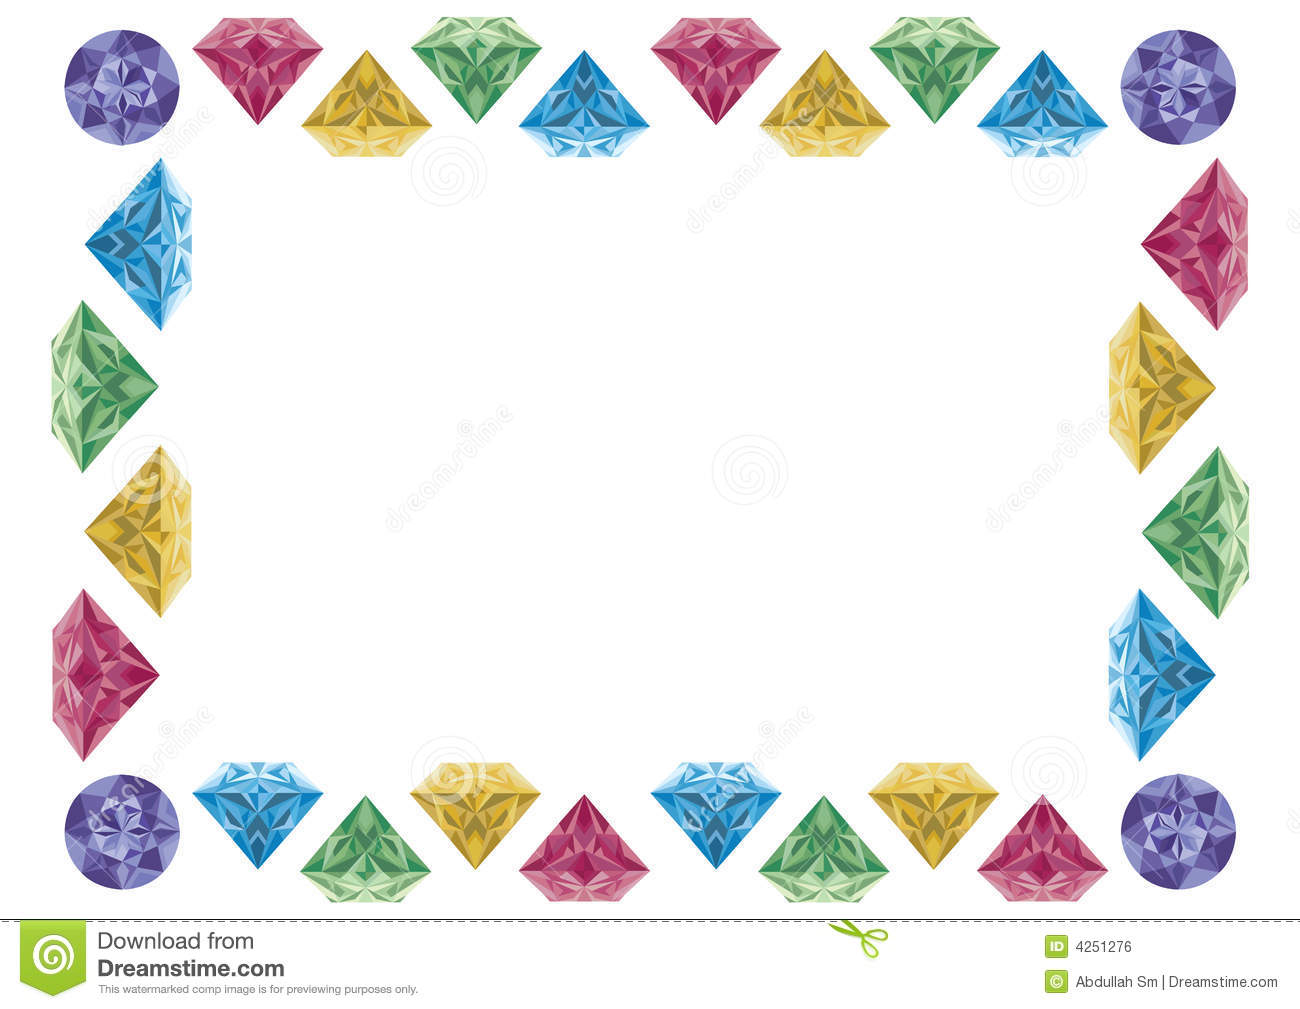 Diamond frame stock illustration. Image of image, isolated ...